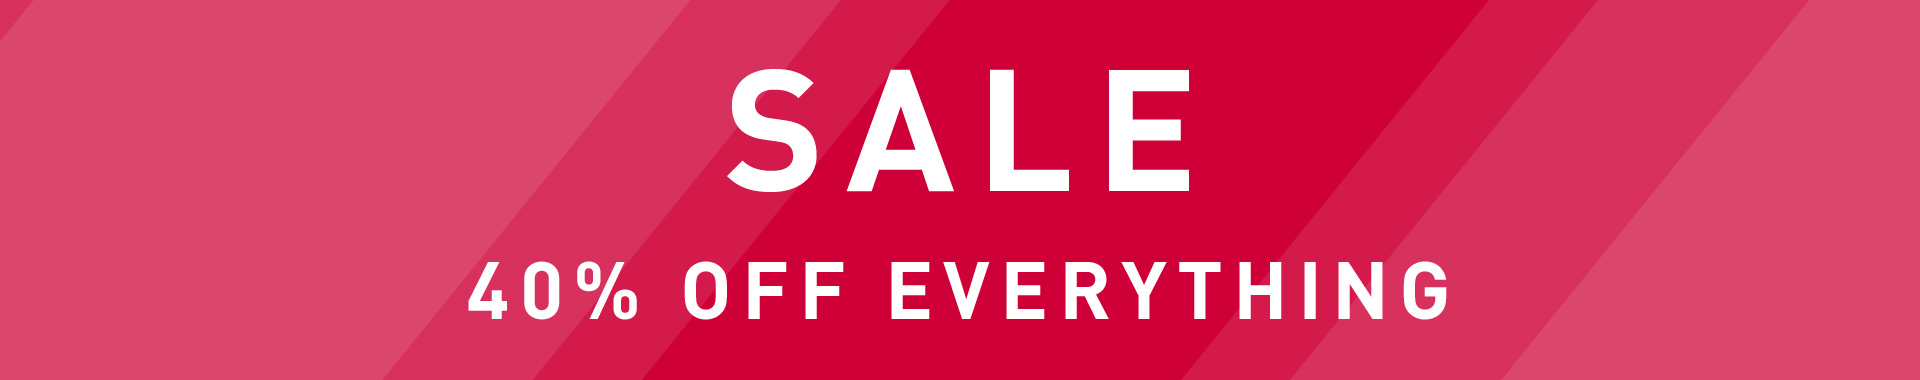 Sale -40% off everything